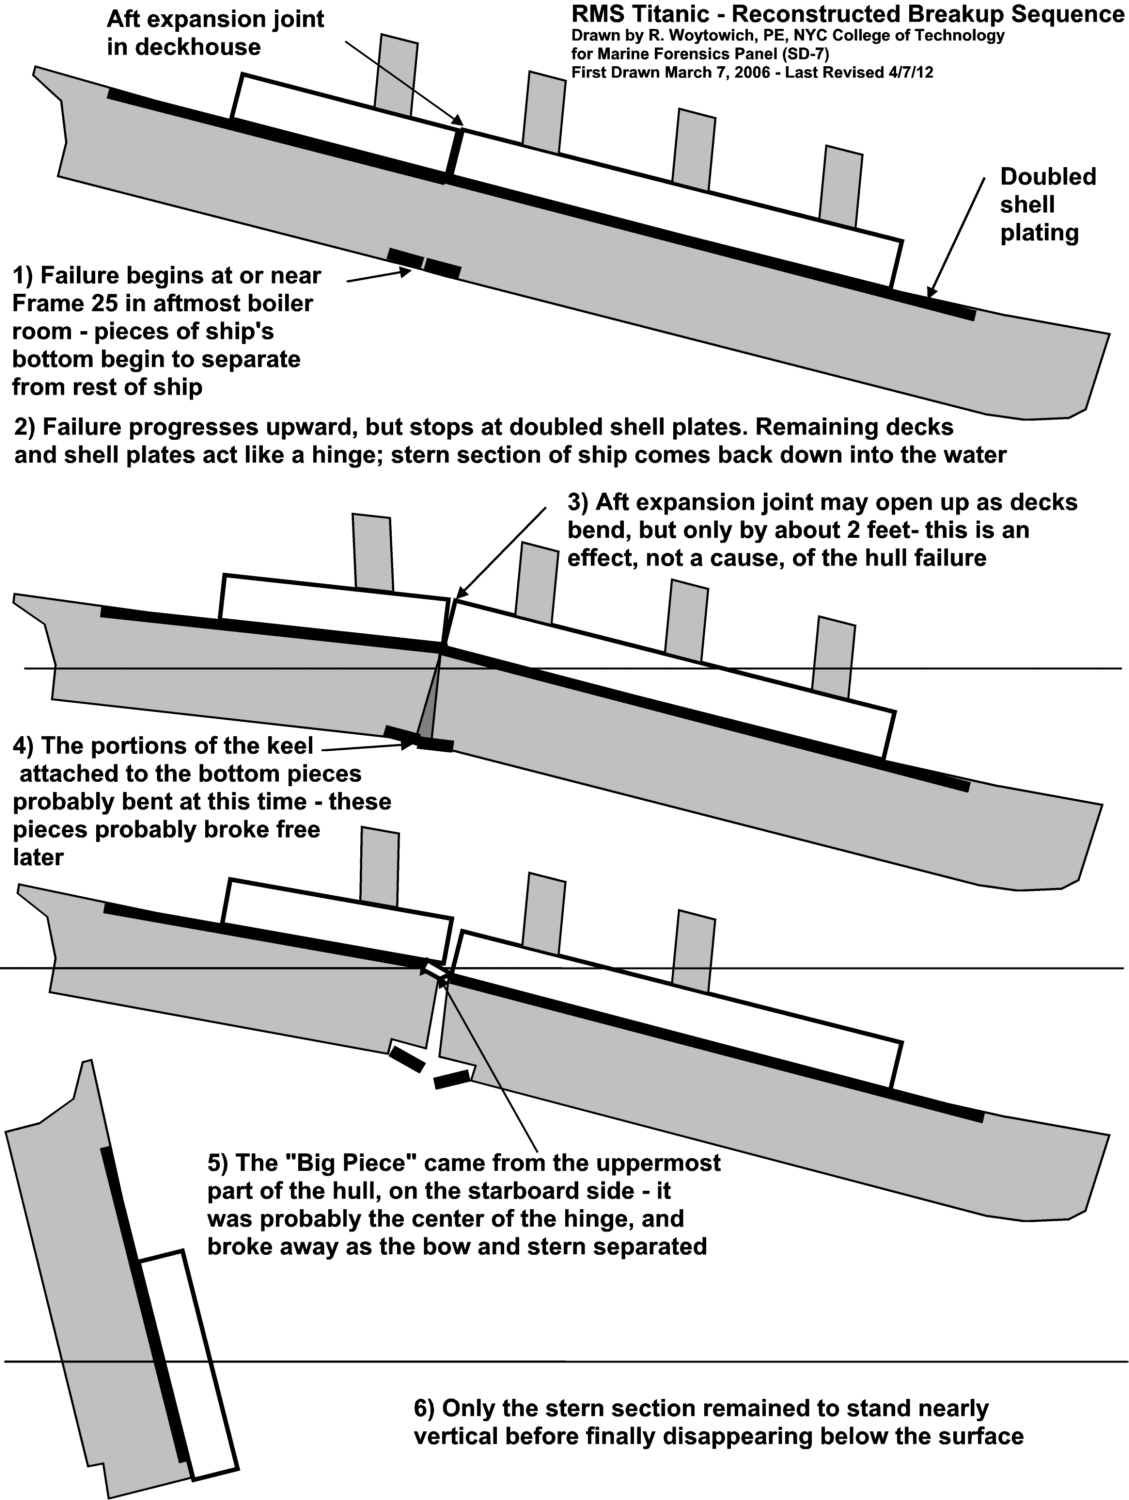 rms titanic reconstructed breakup sequence [ 1129 x 1500 Pixel ]